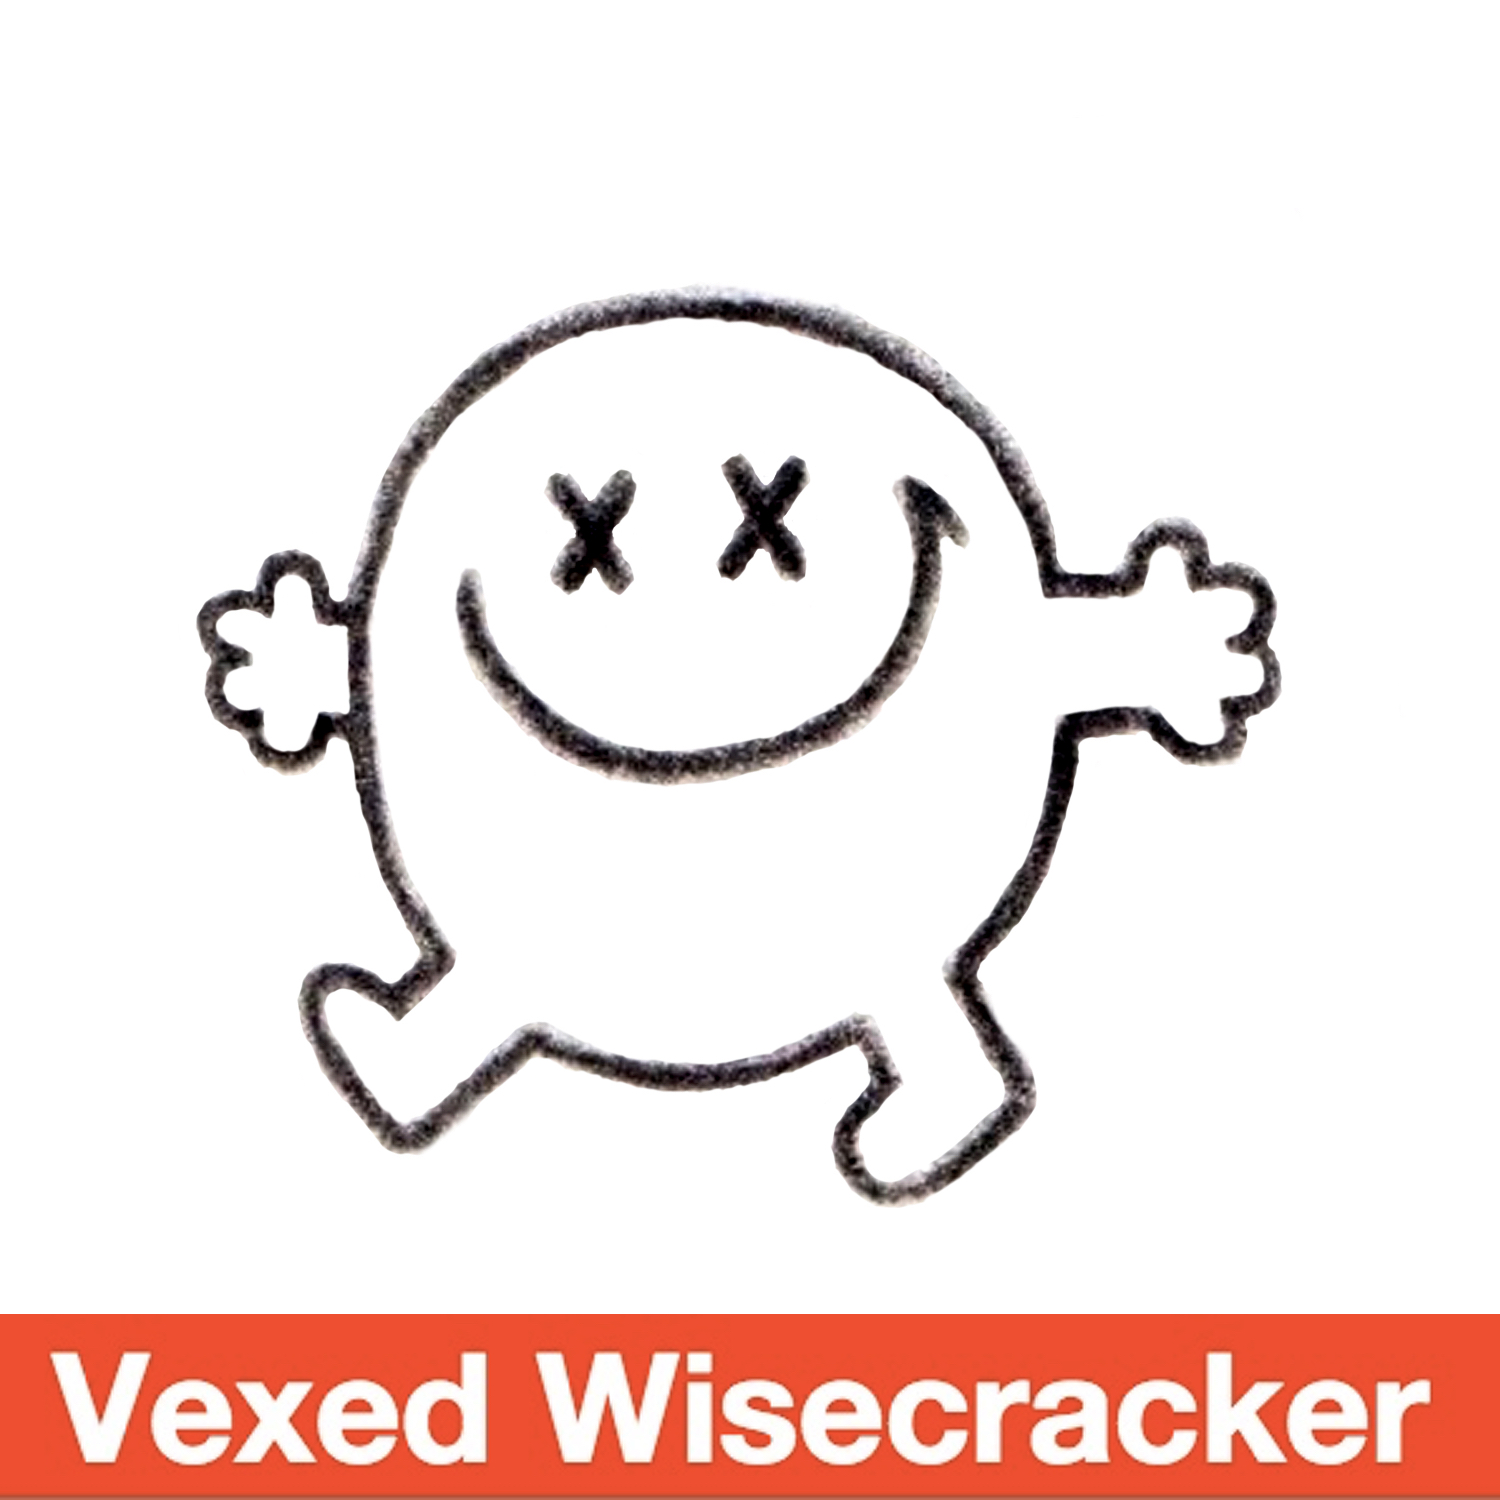 Vexed Wisecracker Smiley X logo square.jpg